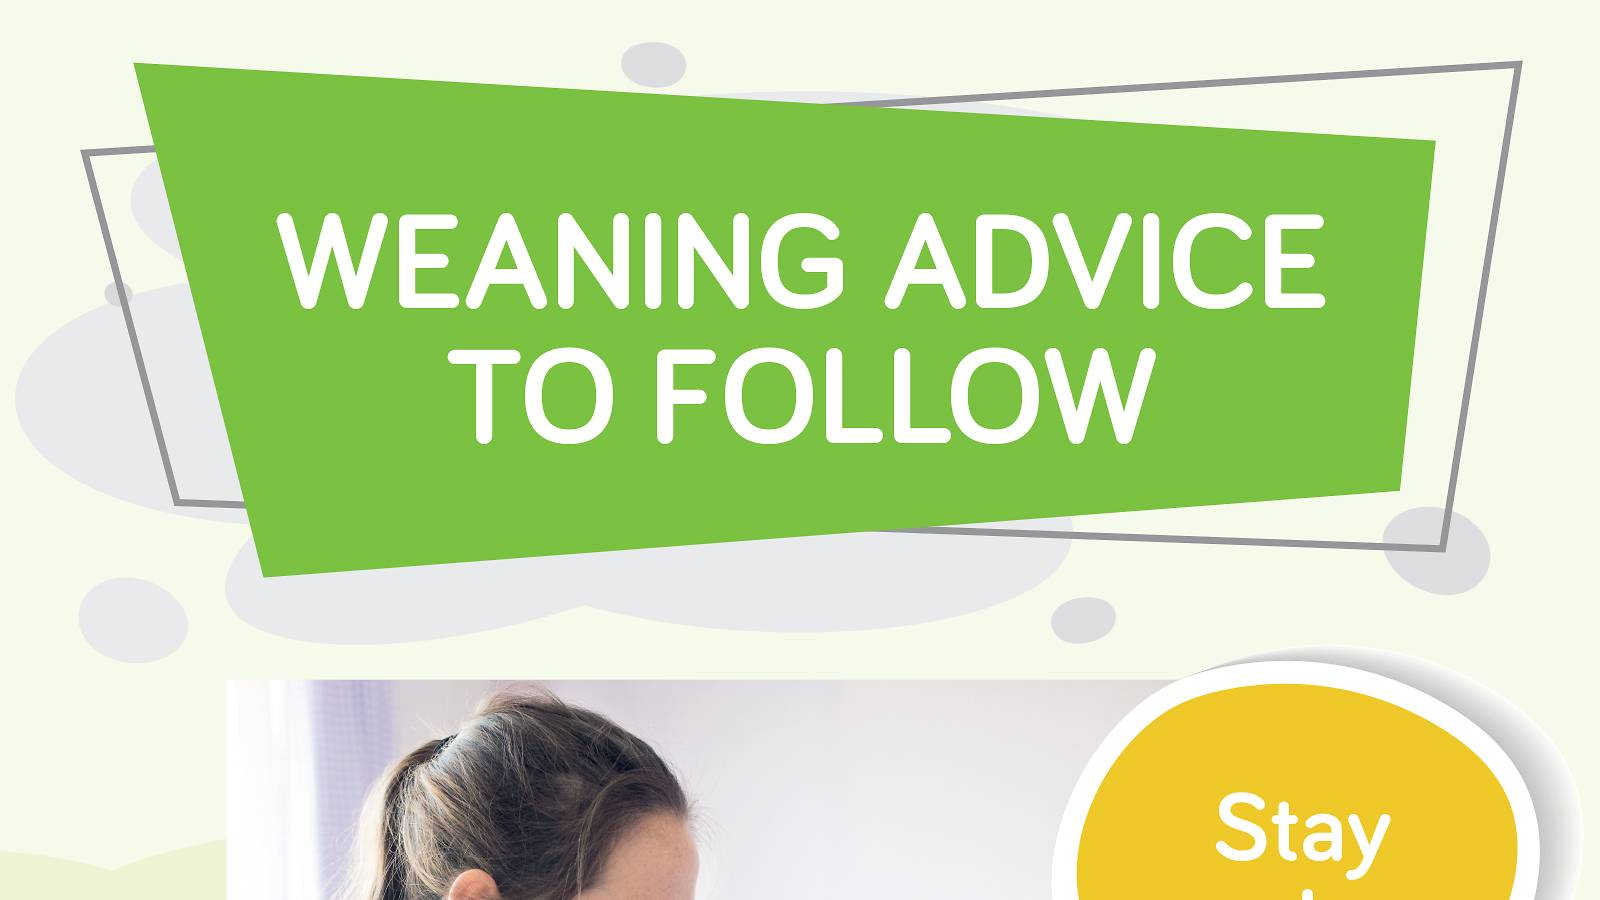 Babies-6-easy-tips-to-wean-baby-successfully-[Infographic]_01